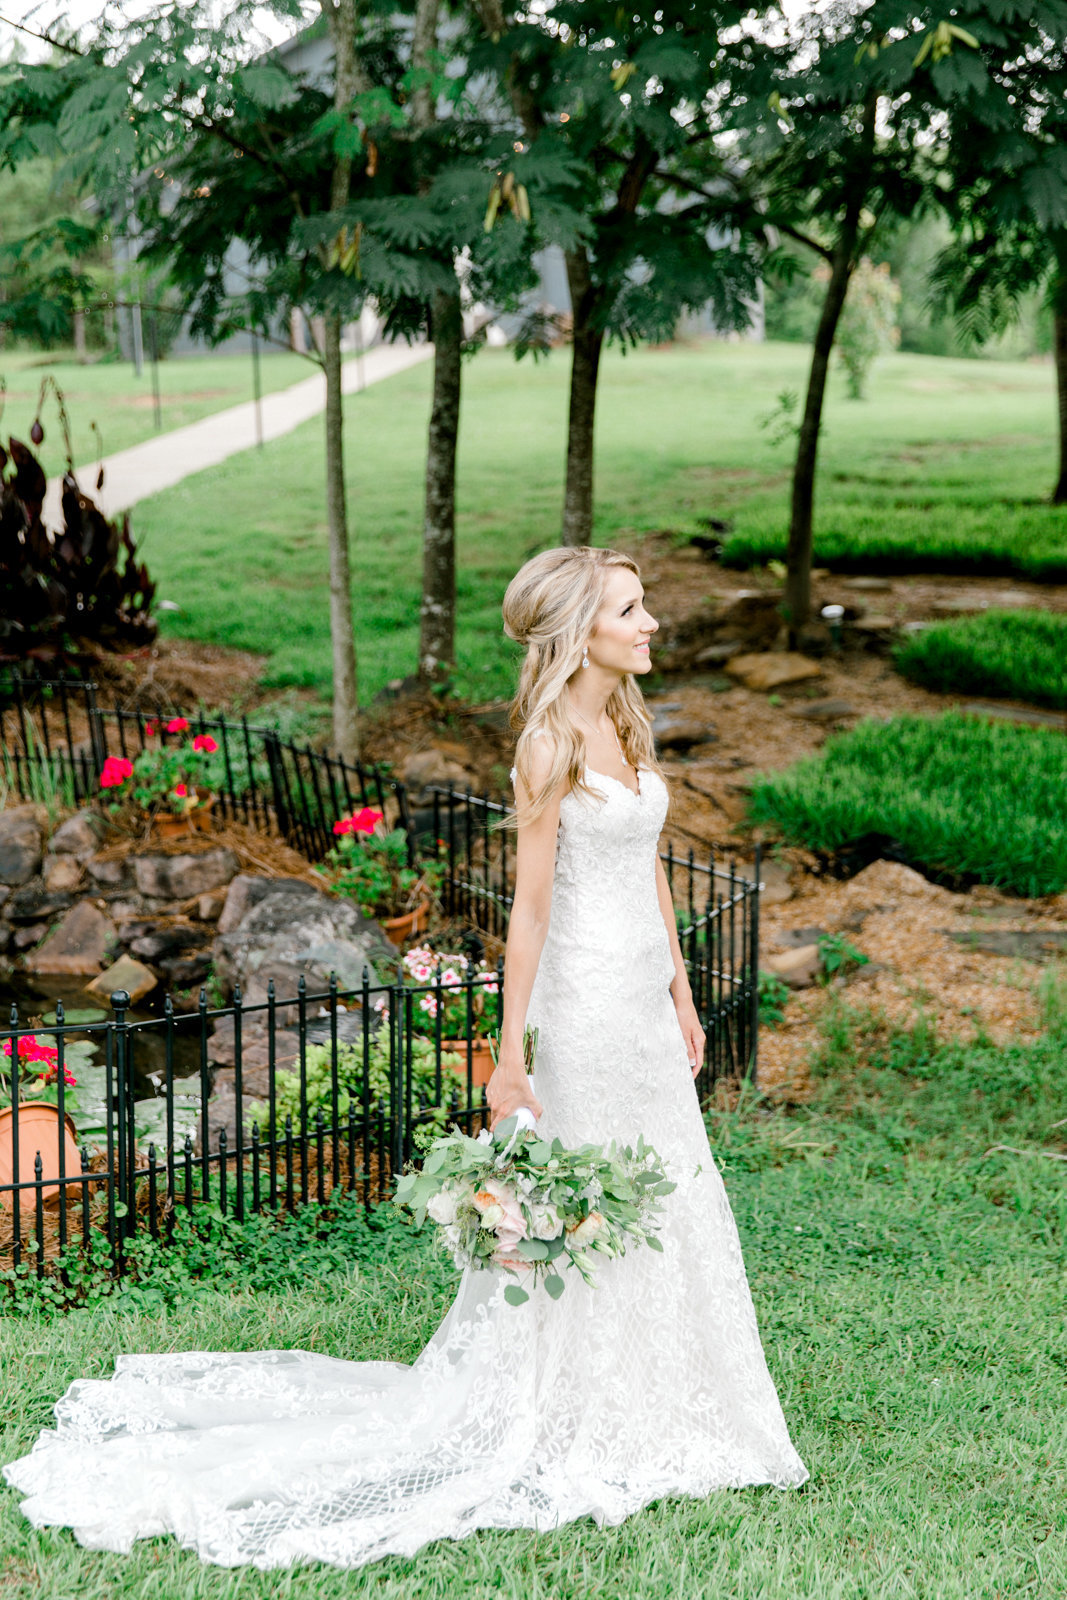 Sydney & William_Lindsay Ott Photography-44